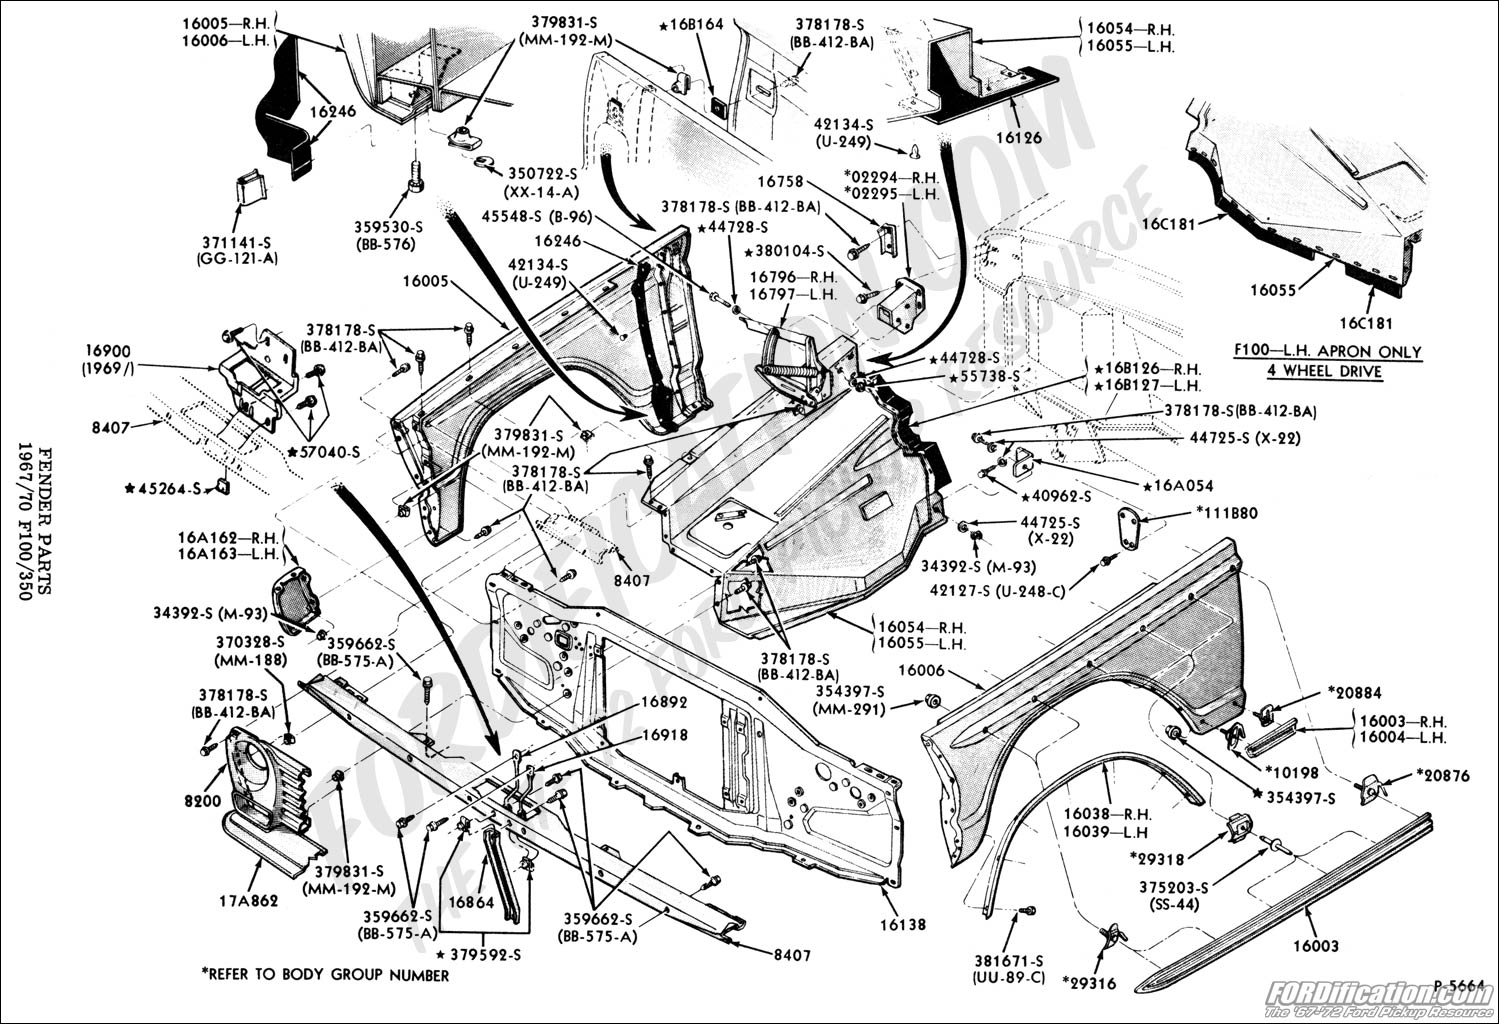 2000 F150 Engine Wire Harness Wiring Library 1999 Diagram Ford Body Schematic Custom U2022 54 Triton 2005 F